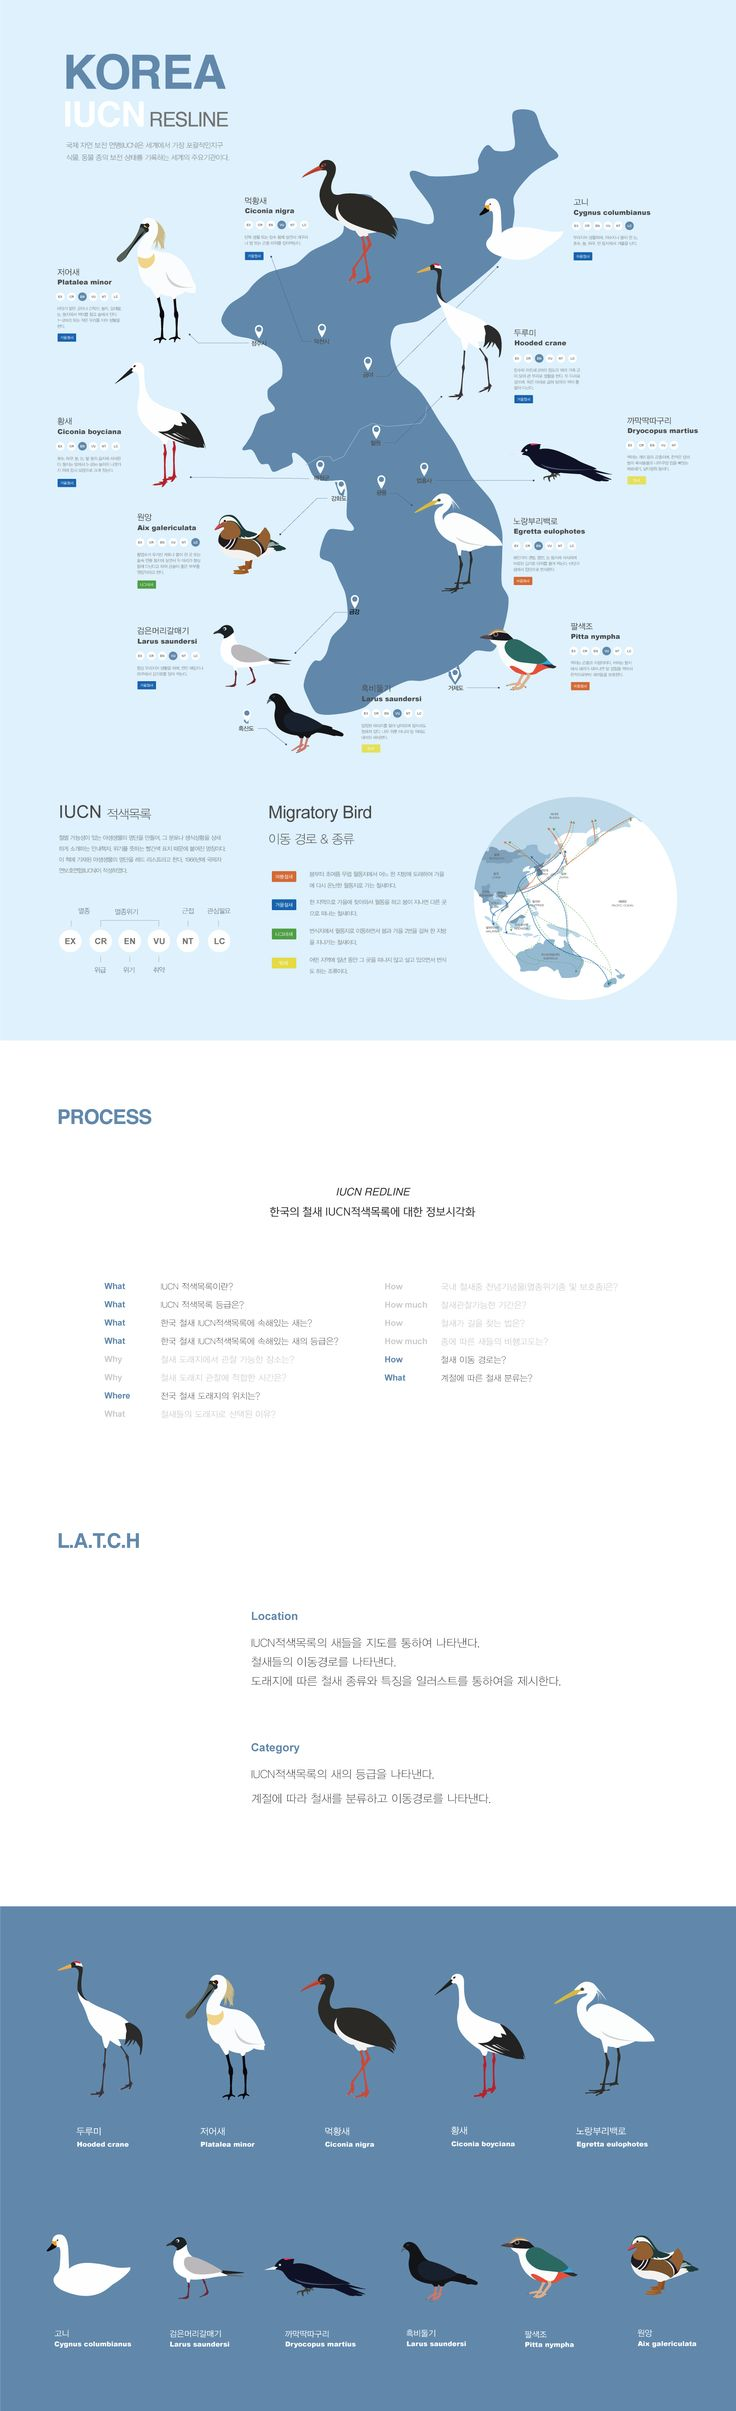 Cho YeJi │ Information Design 2015│ Major in Digital Media Design │#hicoda │hicoda.hongik.ac.kr